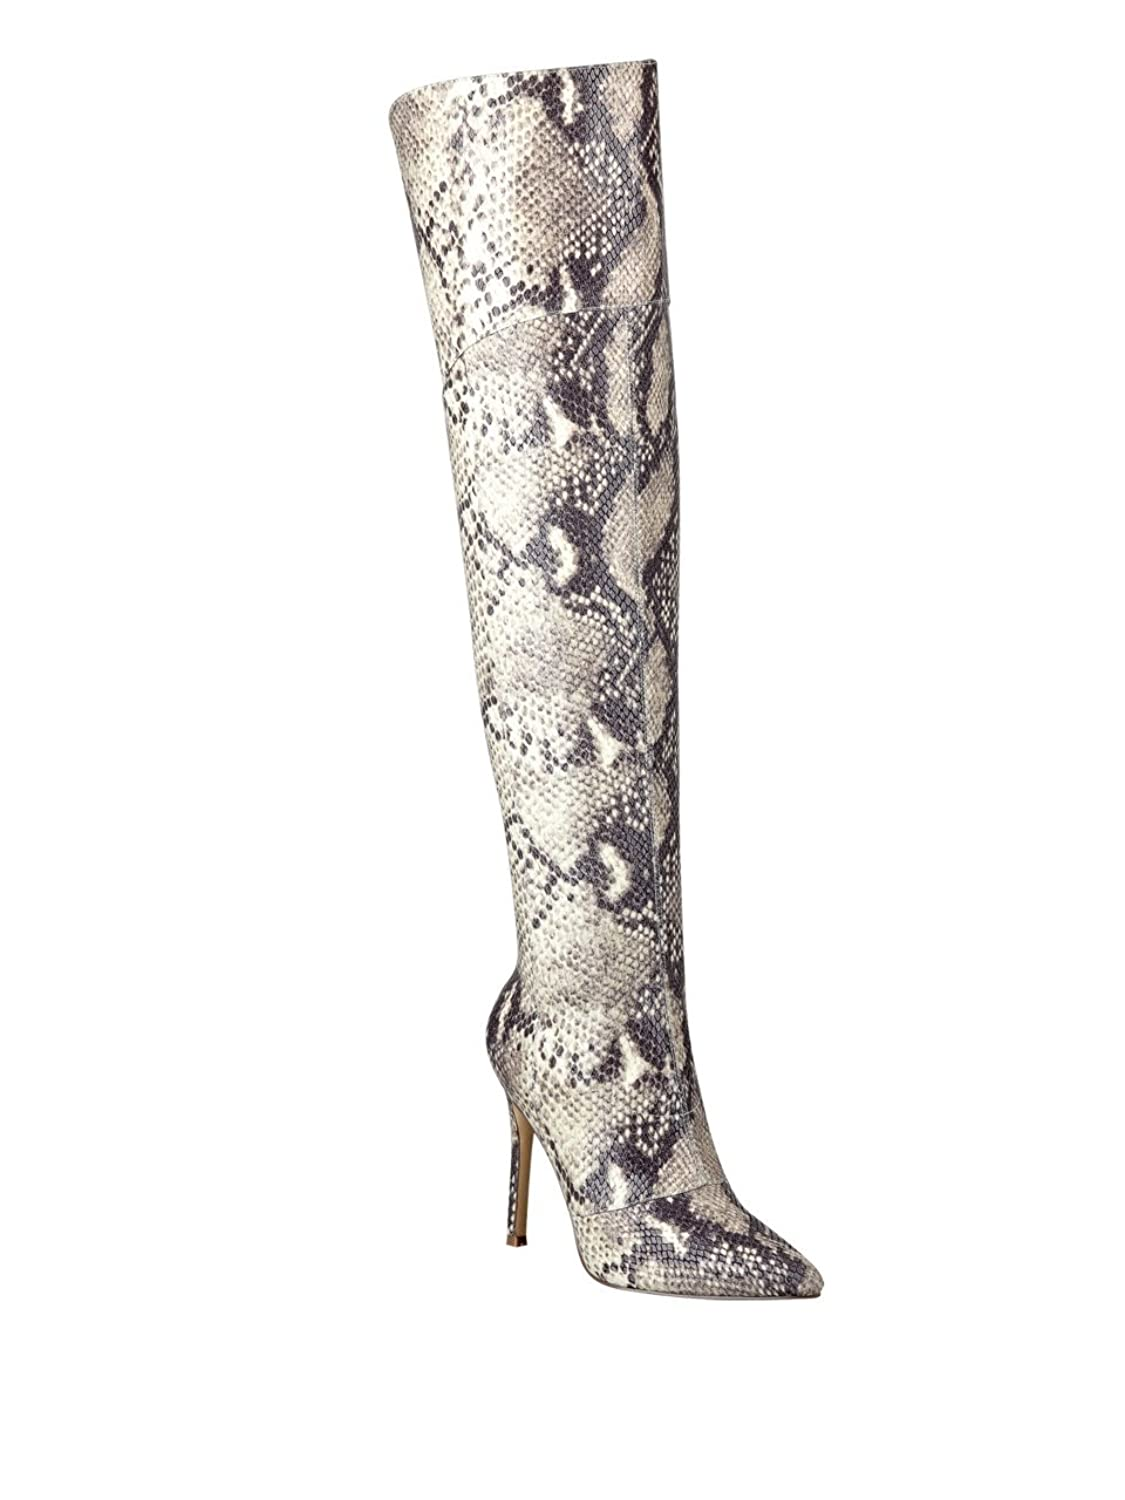 Guess Naddy Over The Knee Boots Heels Wanita Suede 274